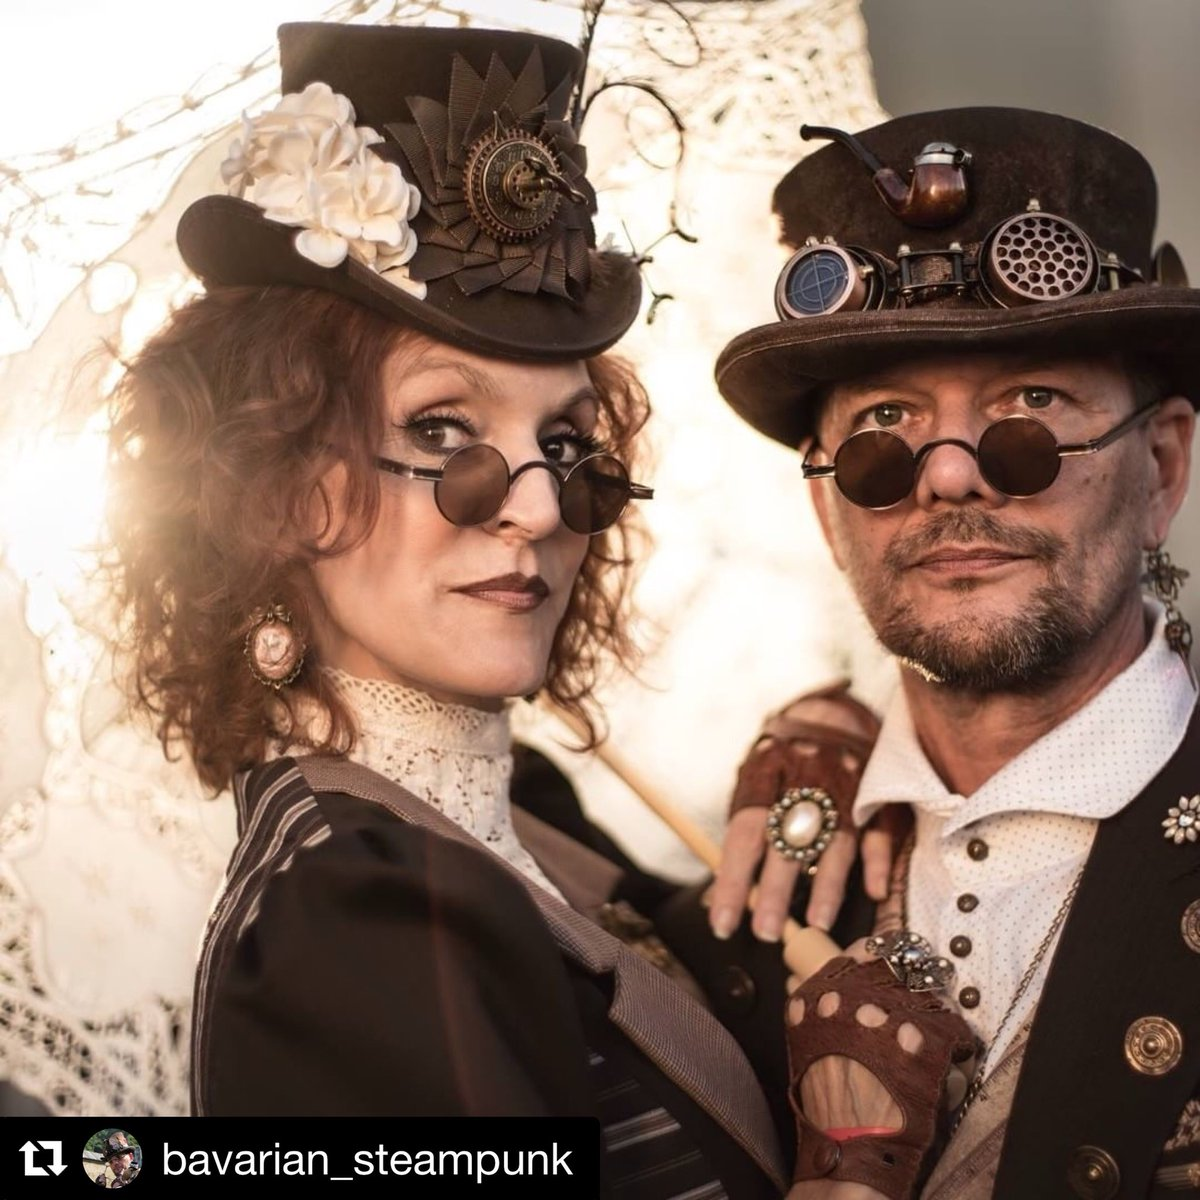 We love attention to detail so we couldn't resist sharing this pair!  #Repost @bavarian_steampunk  Photo: Torsten MacDonald #steampunkcircus #steampunk #costume #alternative #steampunkstyle #attentiontodetail #details #tophats #style #fashion #sunday #steampunksunday #photo